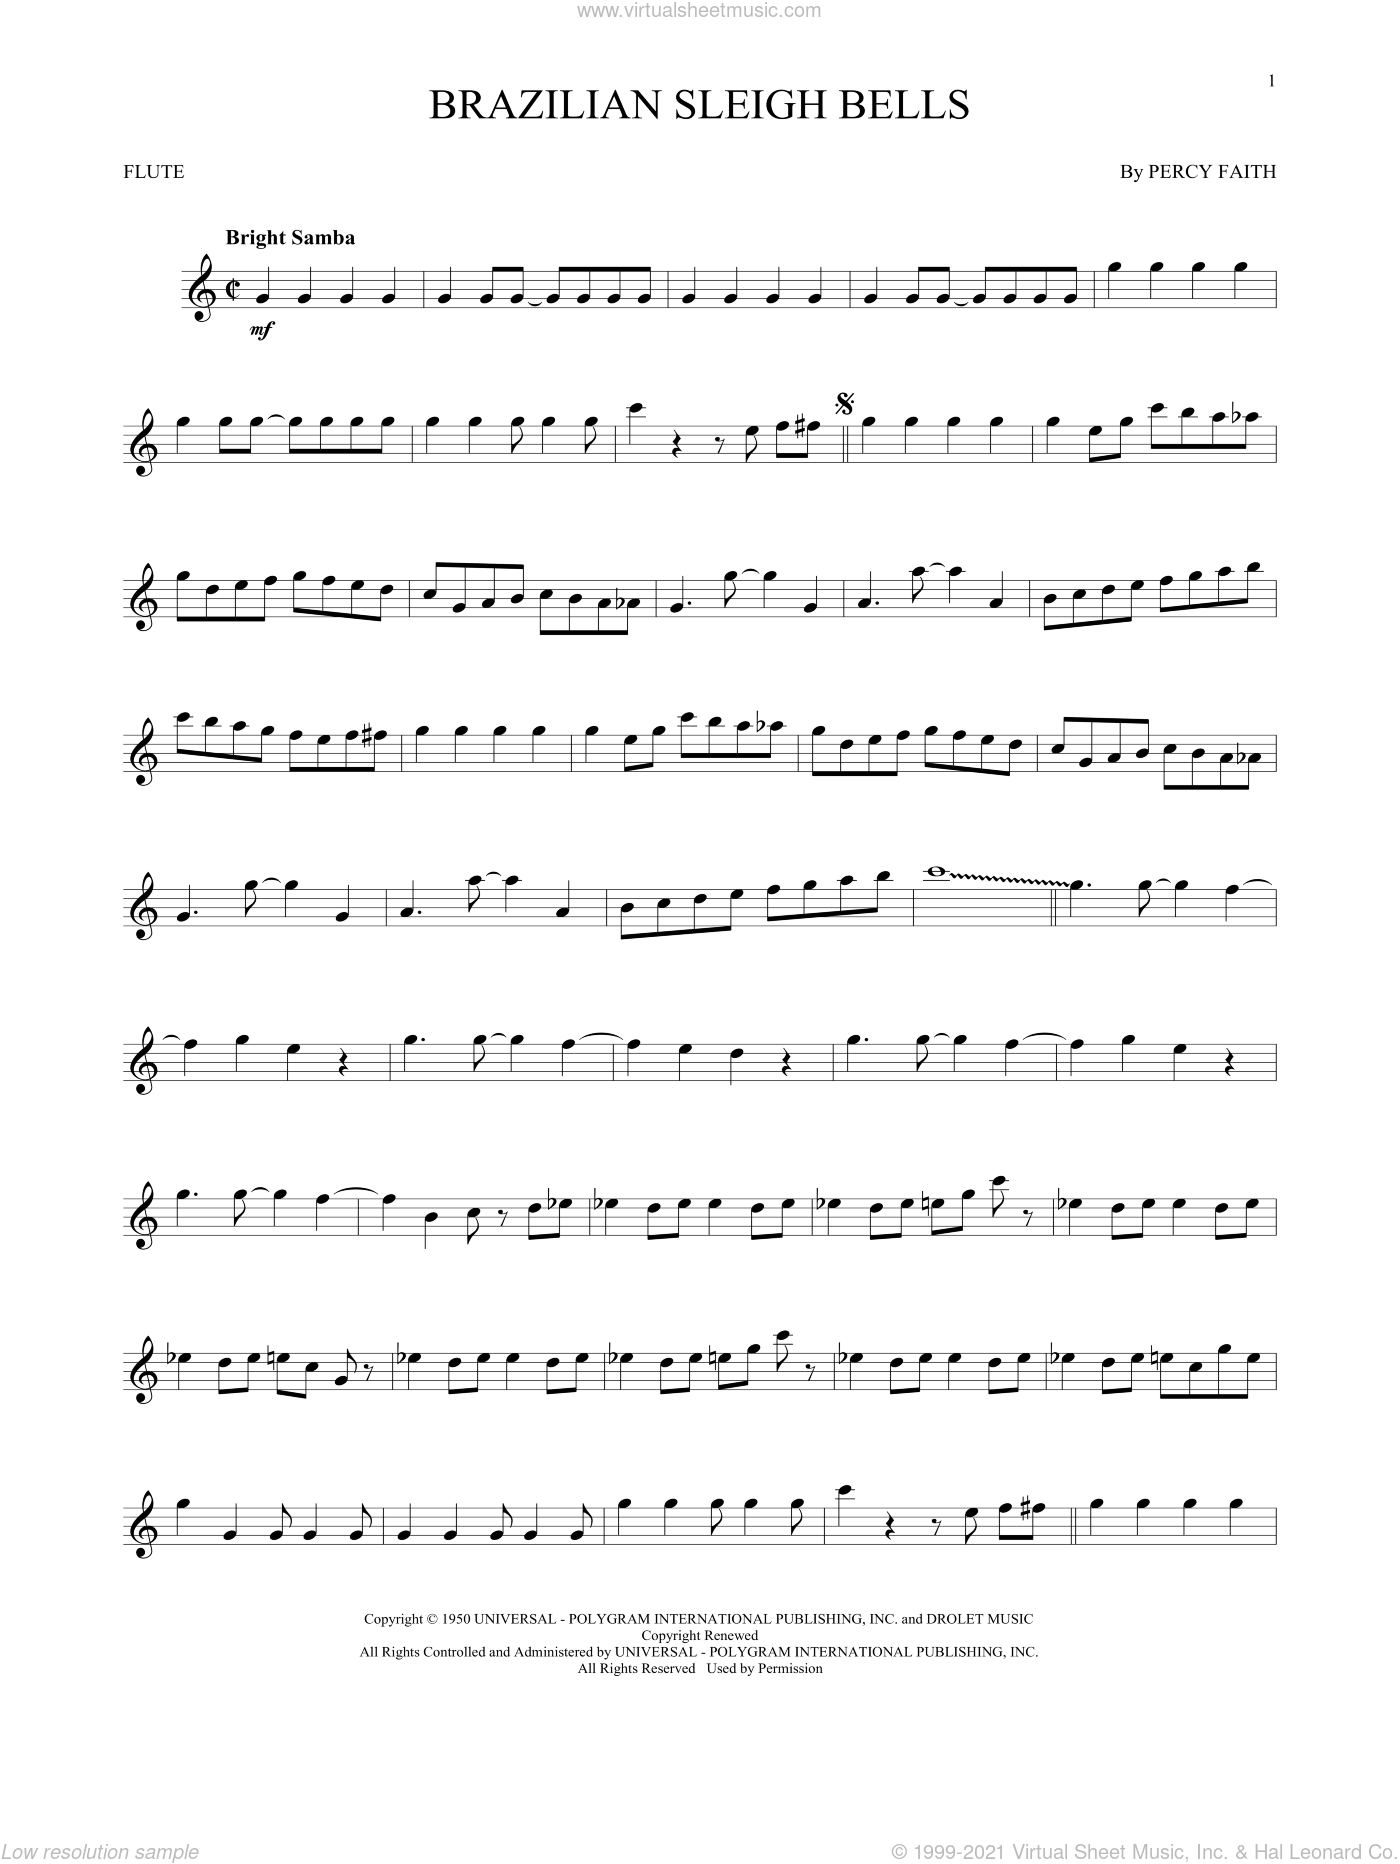 Brazilian Sleigh Bells sheet music for flute solo by Percy Faith. Score Image Preview.